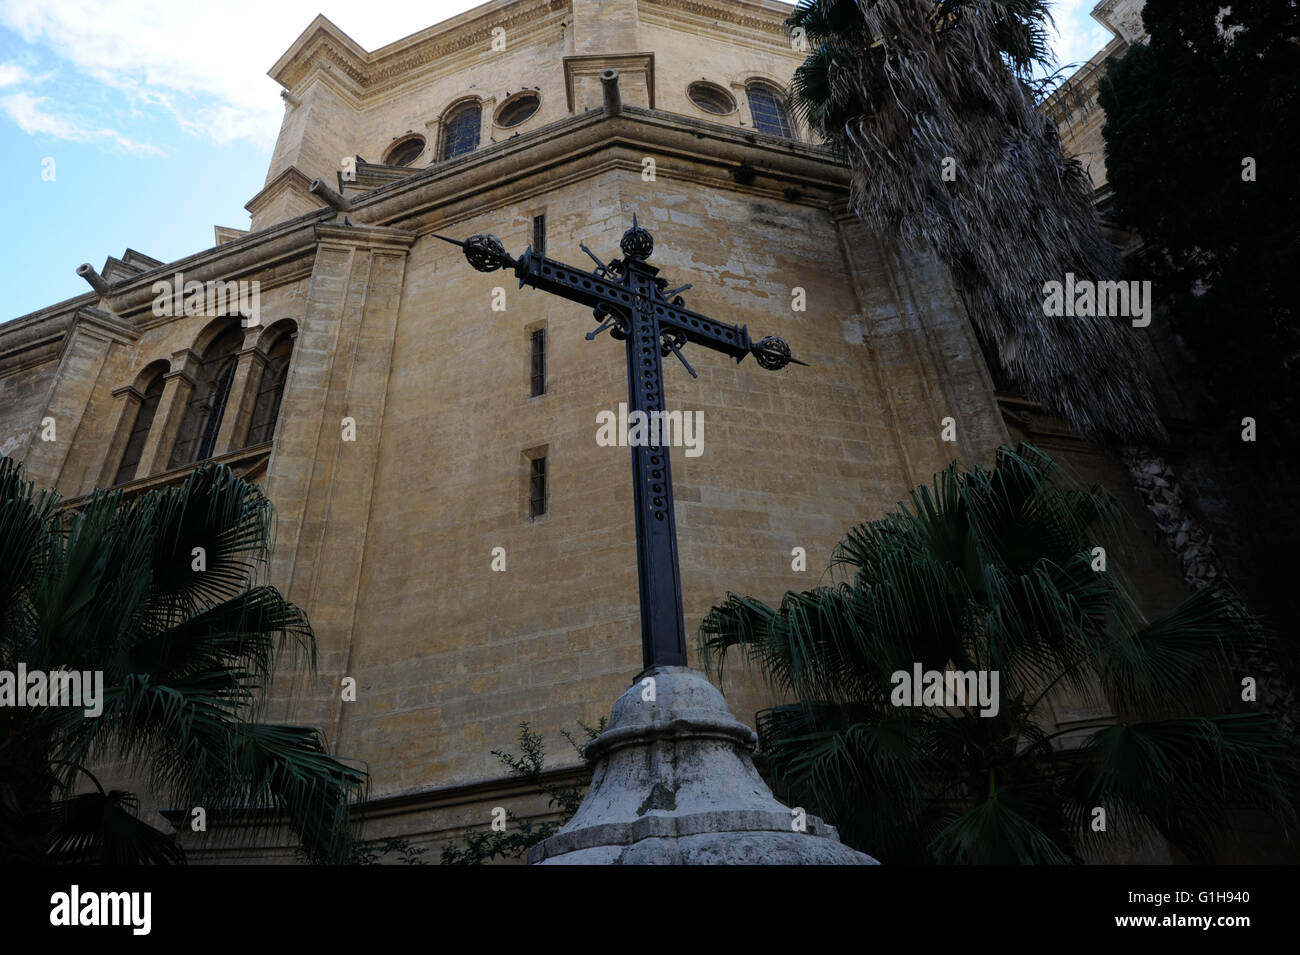 Cross, redemption, the Cathedral of Malaga - Stock Image